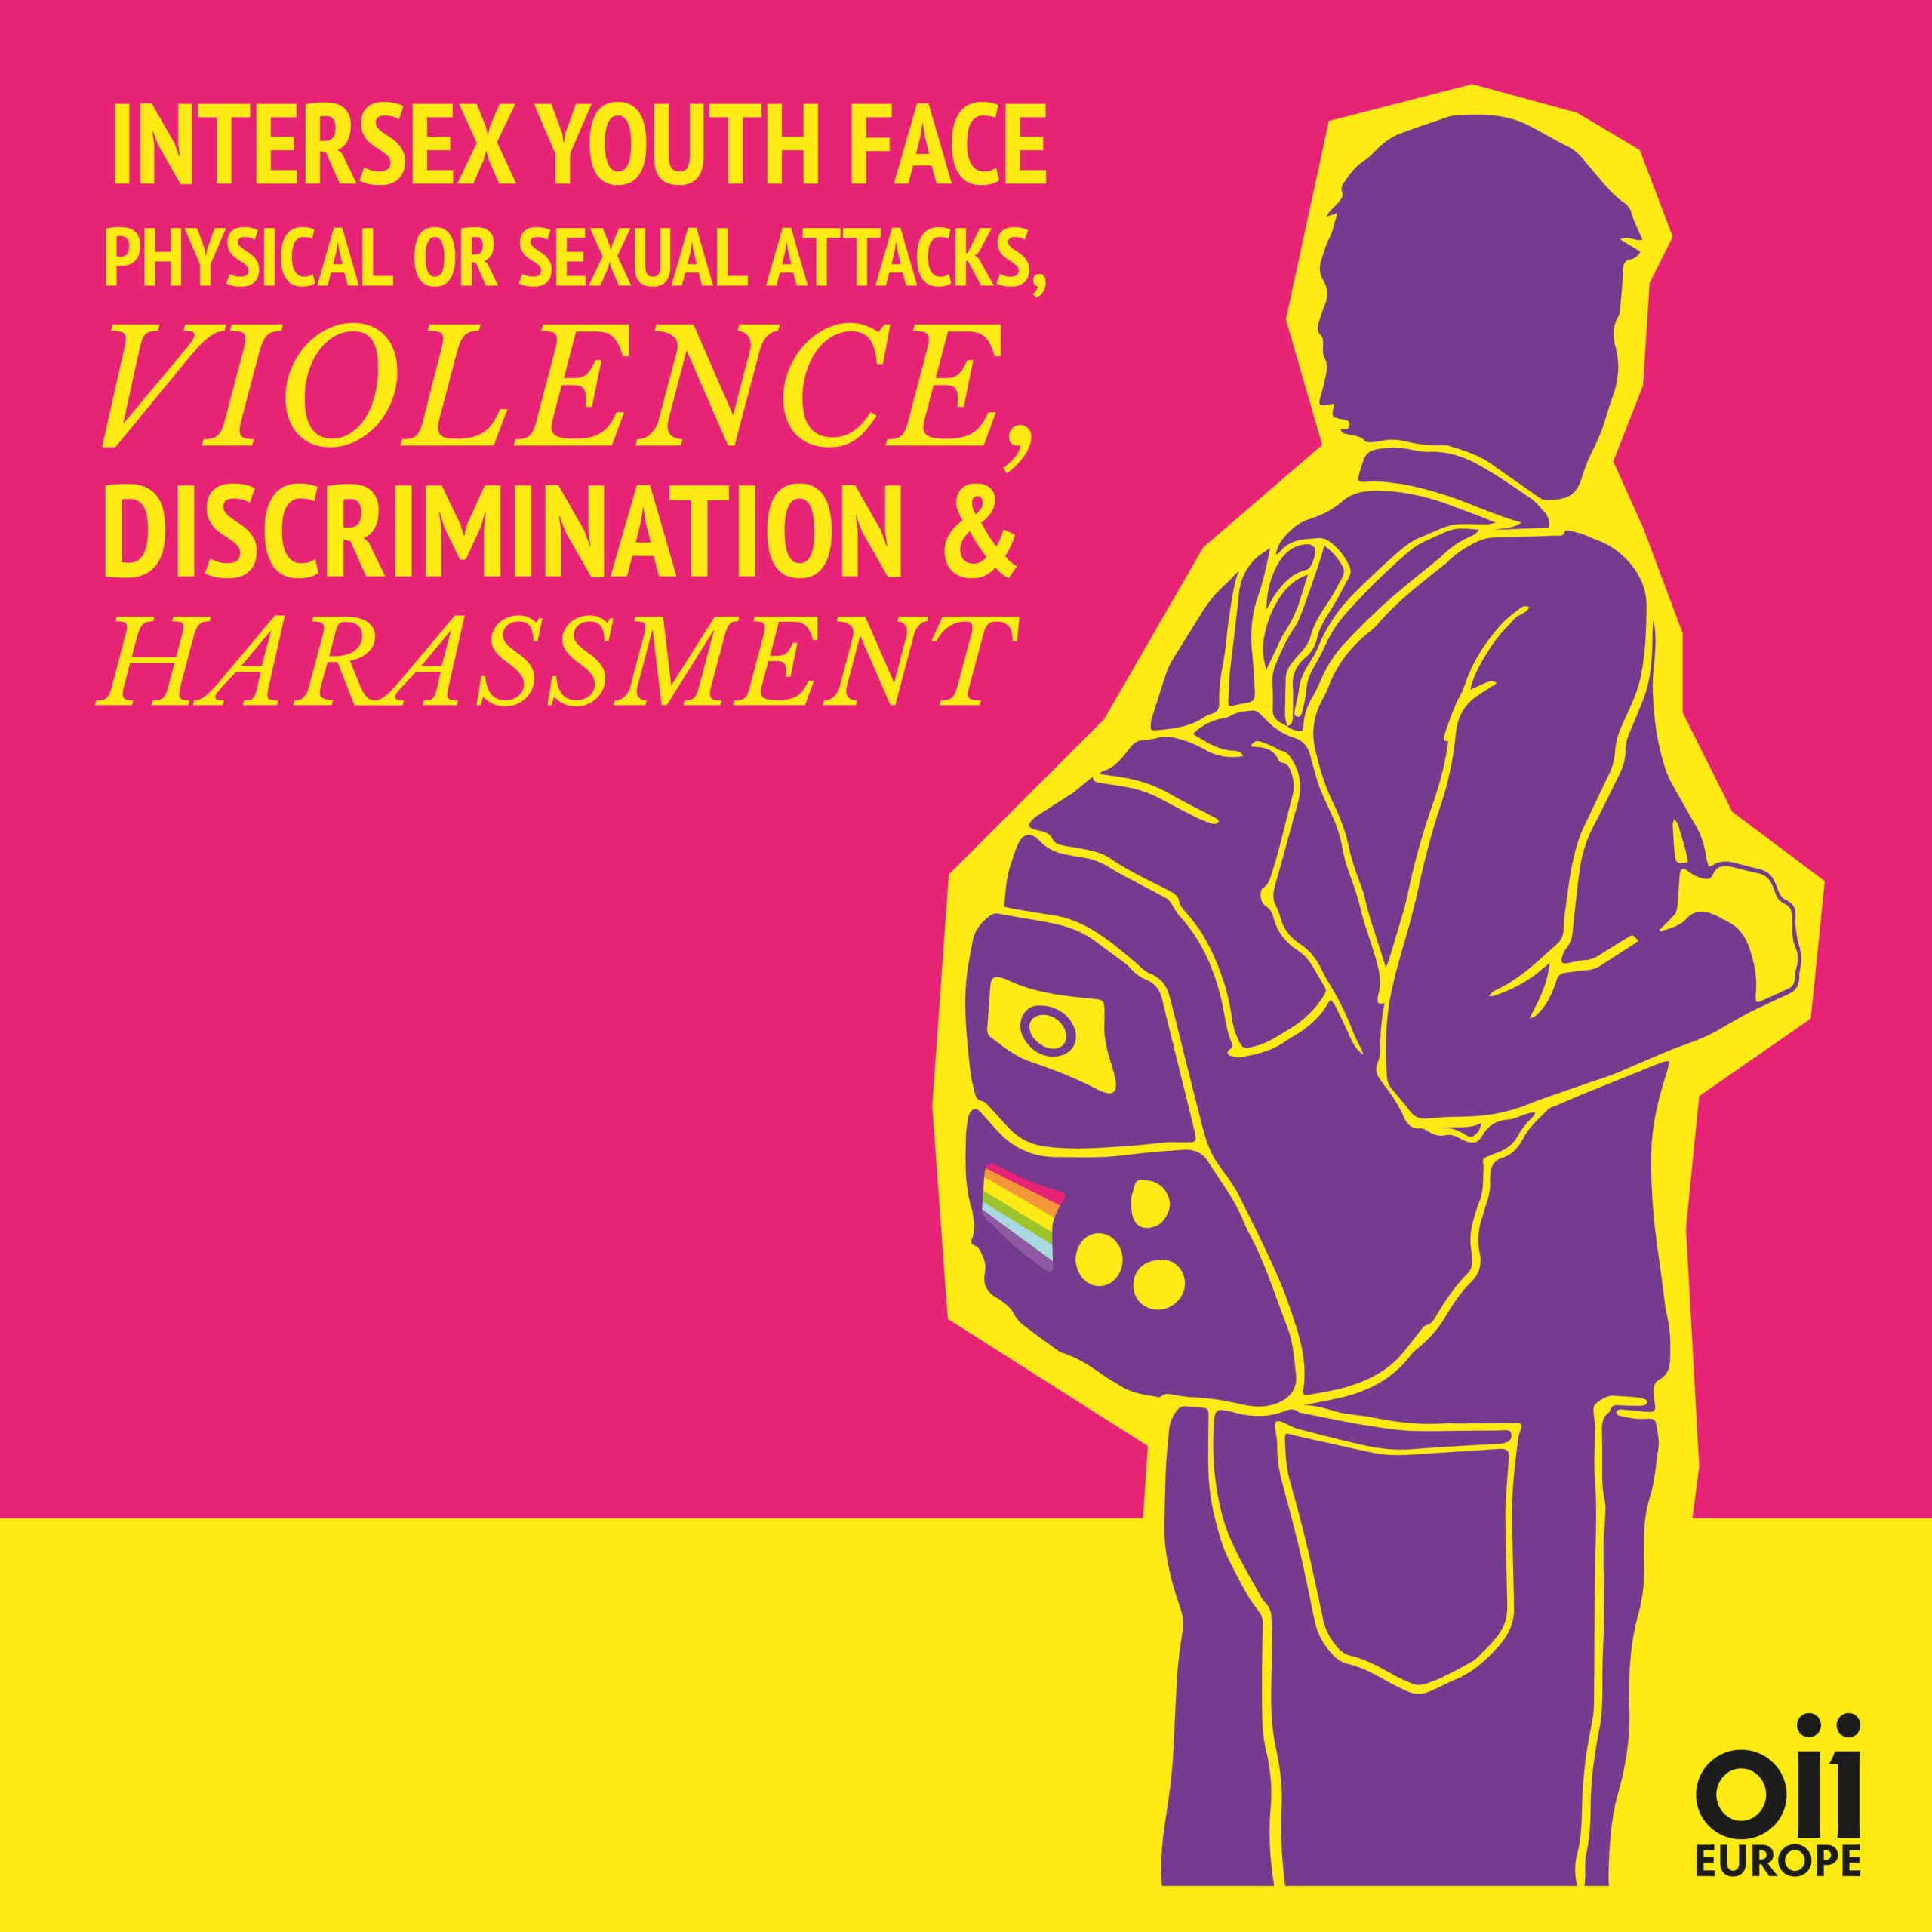 Intersex youth face discrimination, physical violence and harassment